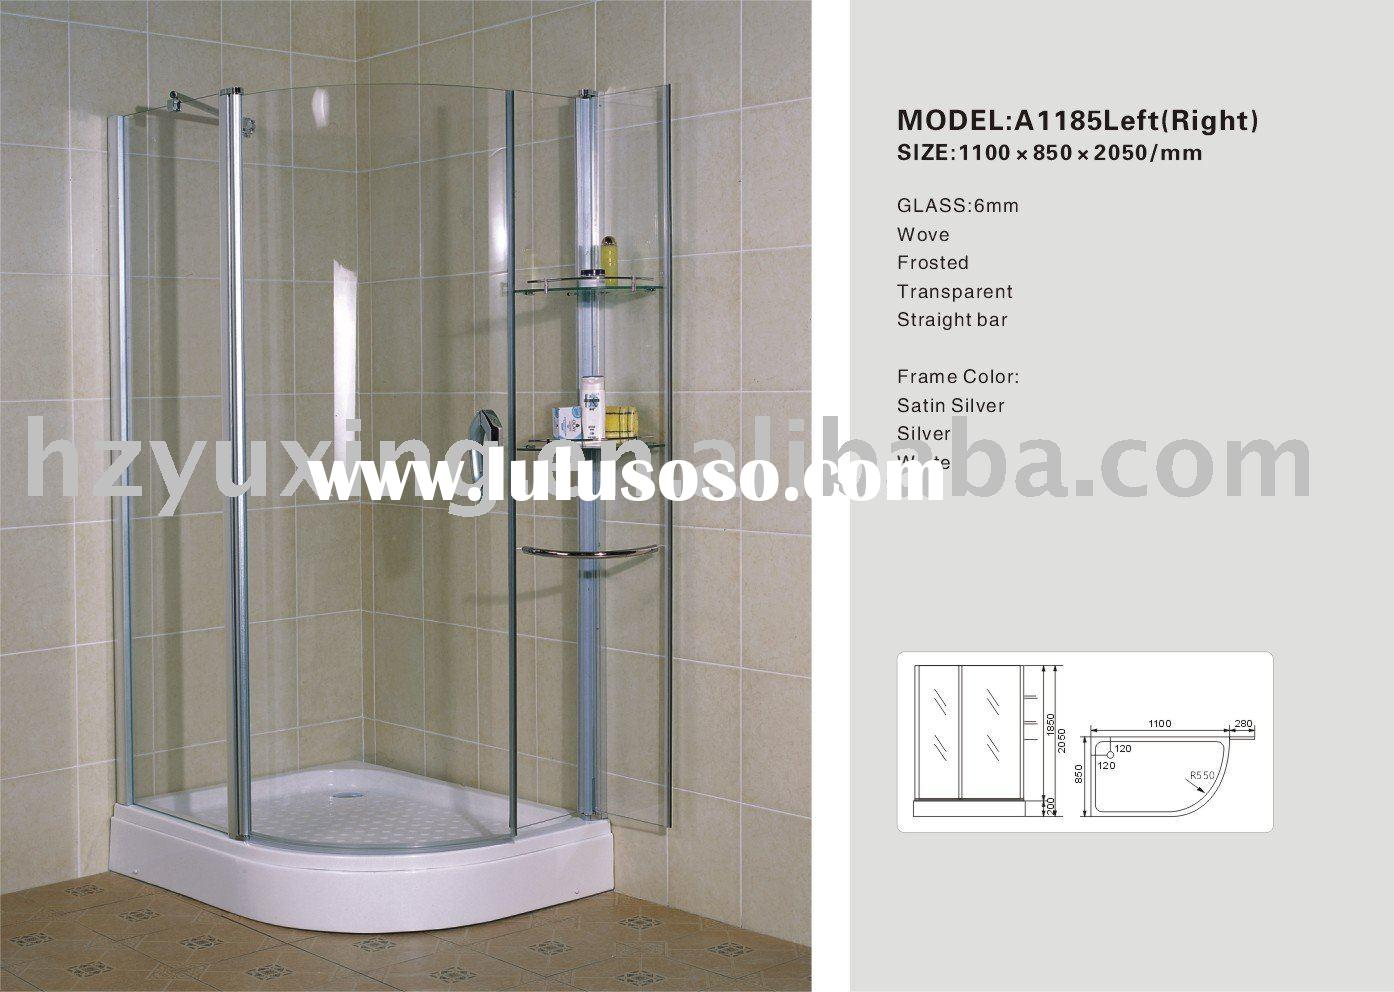 simple shower room high quality tempered glass shower bathroom shower enclosure A1185Left(Right)